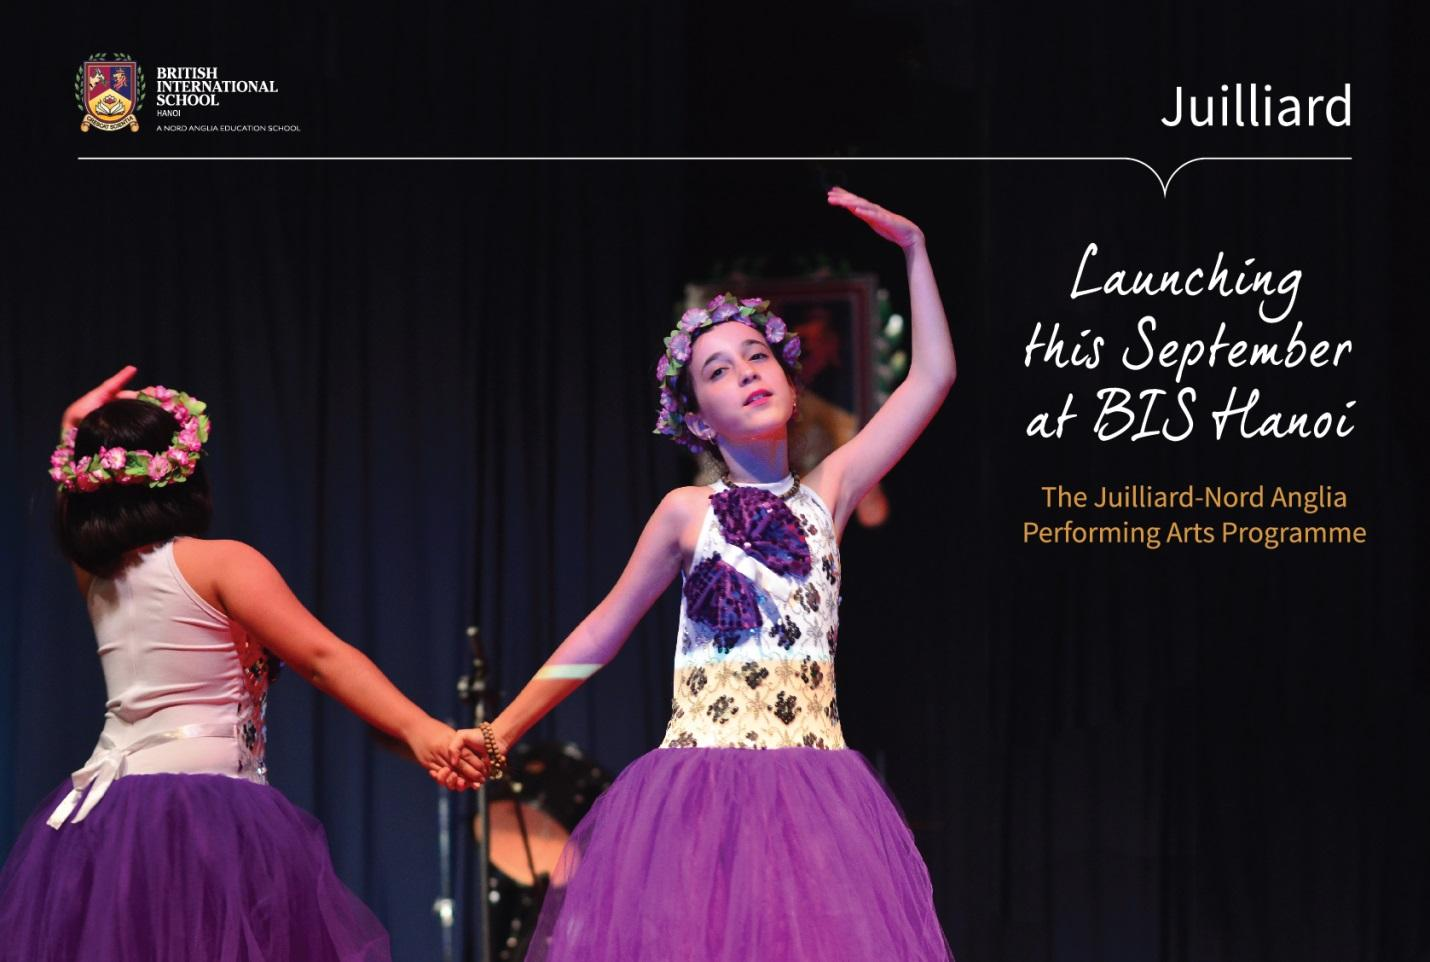 BIS Hanoi and the Juilliard Performing Arts Programme